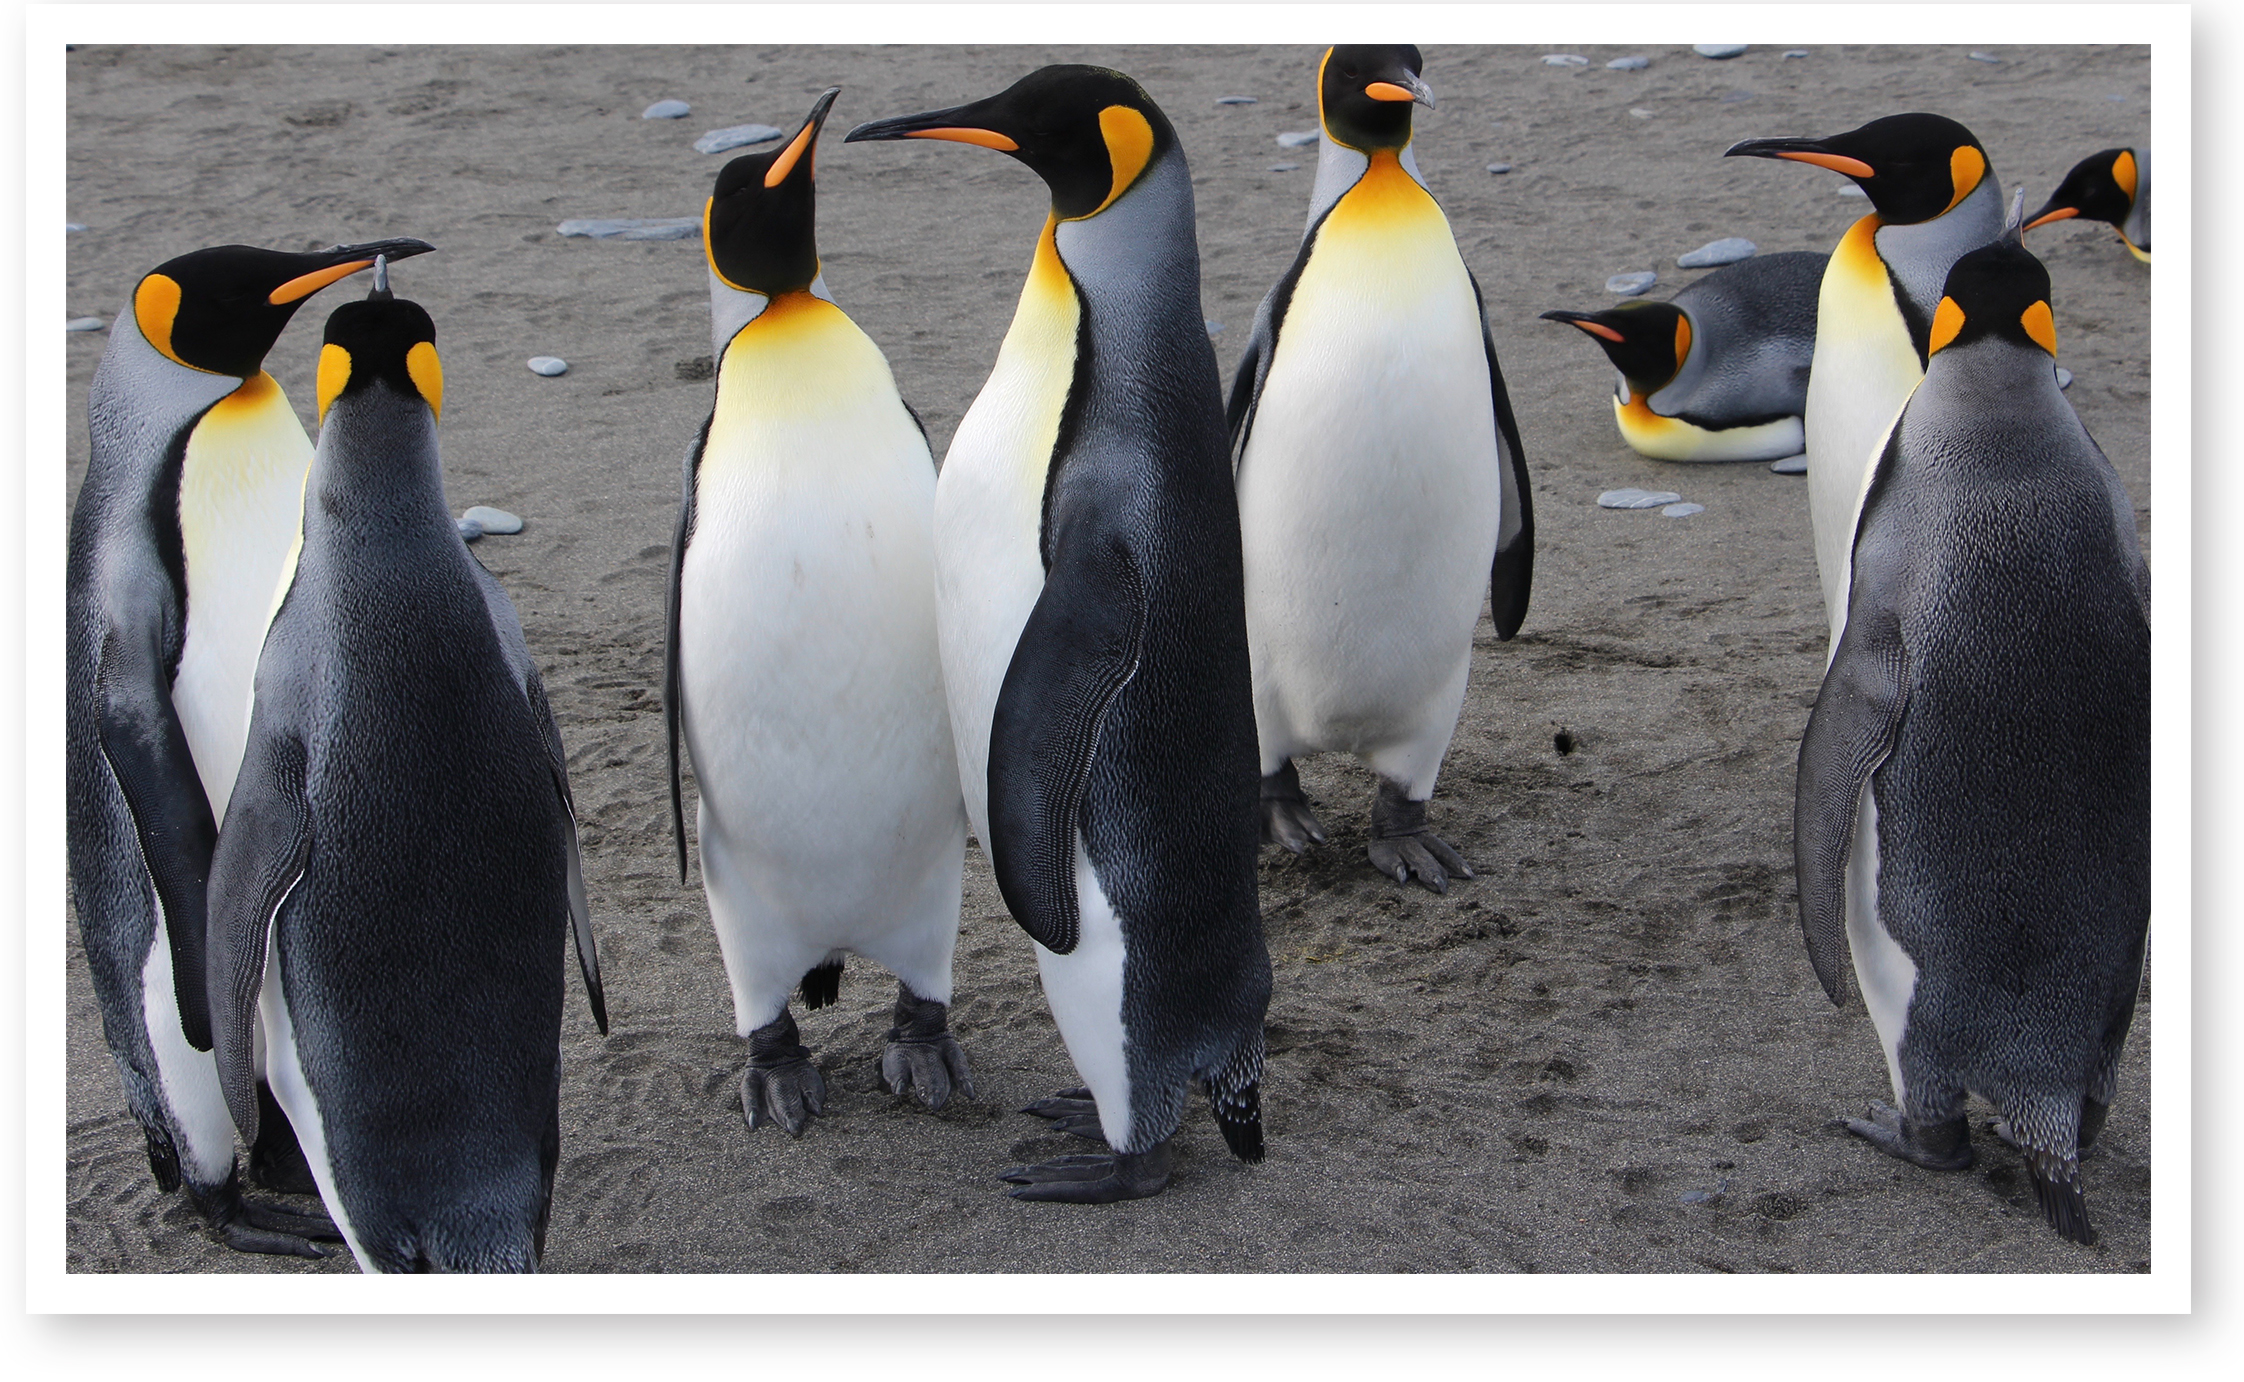 C. Albert Podell just returned from an awesome/awful (depending on the weather) adventure to the south Atlantic. He saw countless penguins, including this happy group. You will read about Albert's trip in the next issue of The LOG, coming out in the early summer.